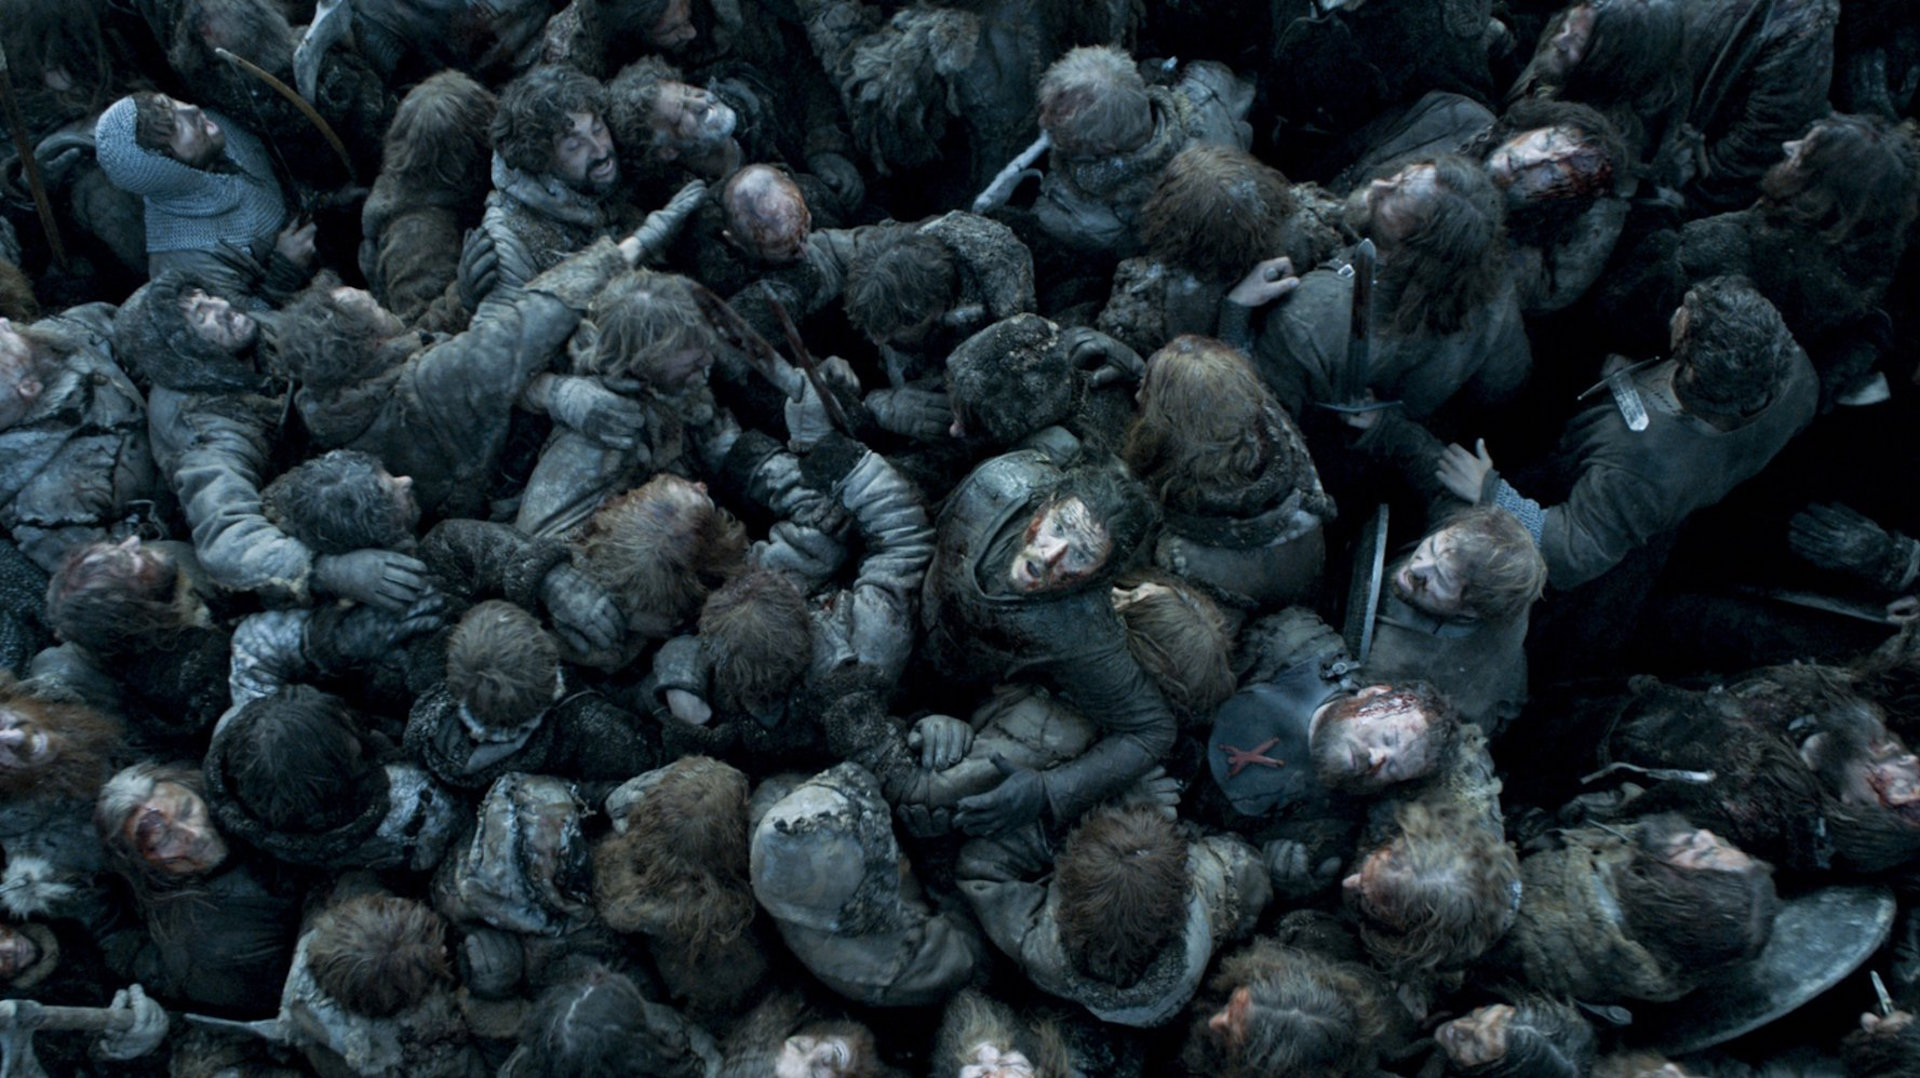 Game of Thrones: The 10 Most Shocking and Surprising Moments of Seasons 5 to 7